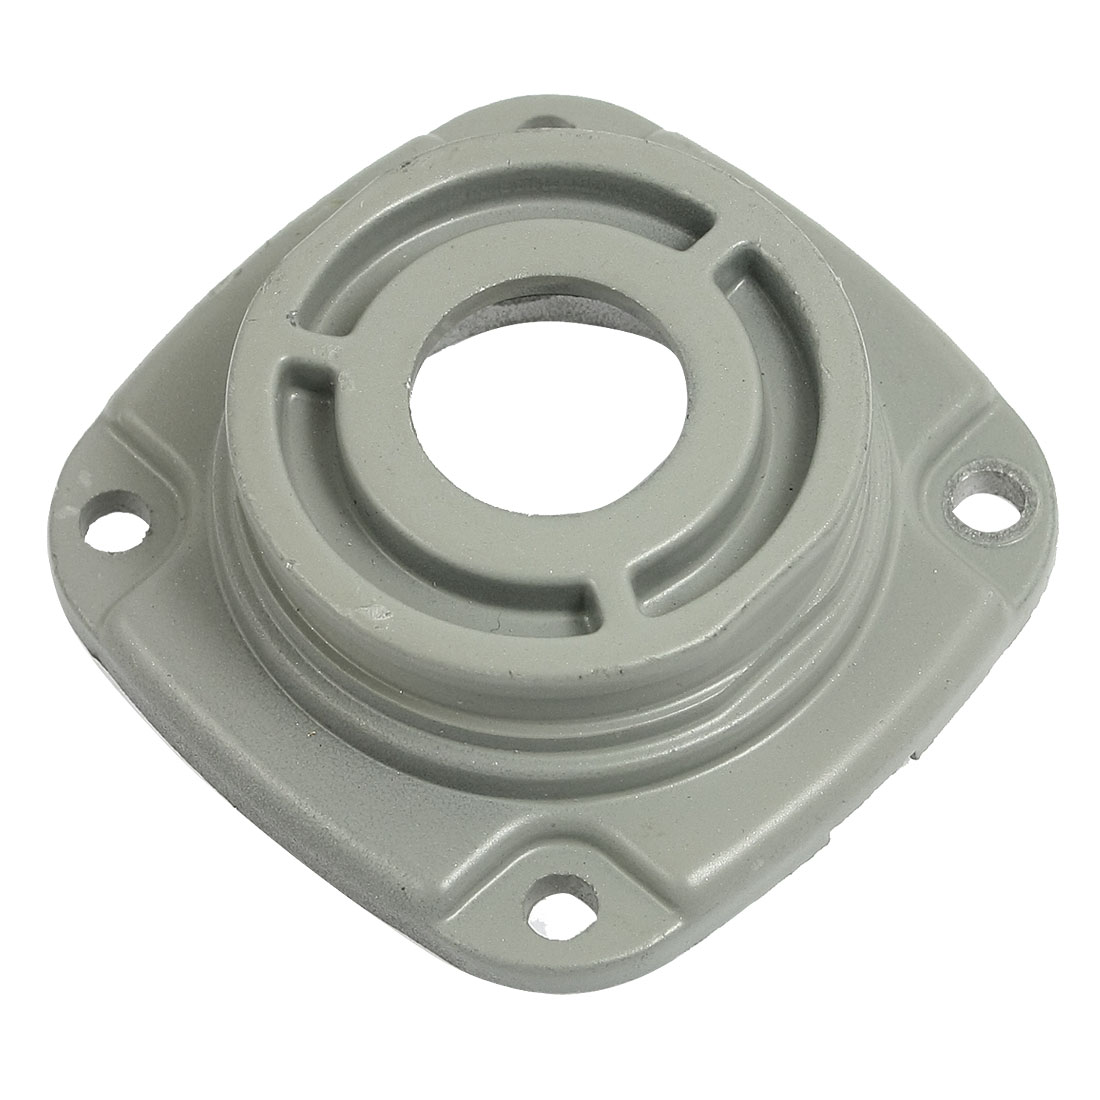 Replacement Aluminum Angle Grinder Bearing Seat Gray for Hitachi G15SA2